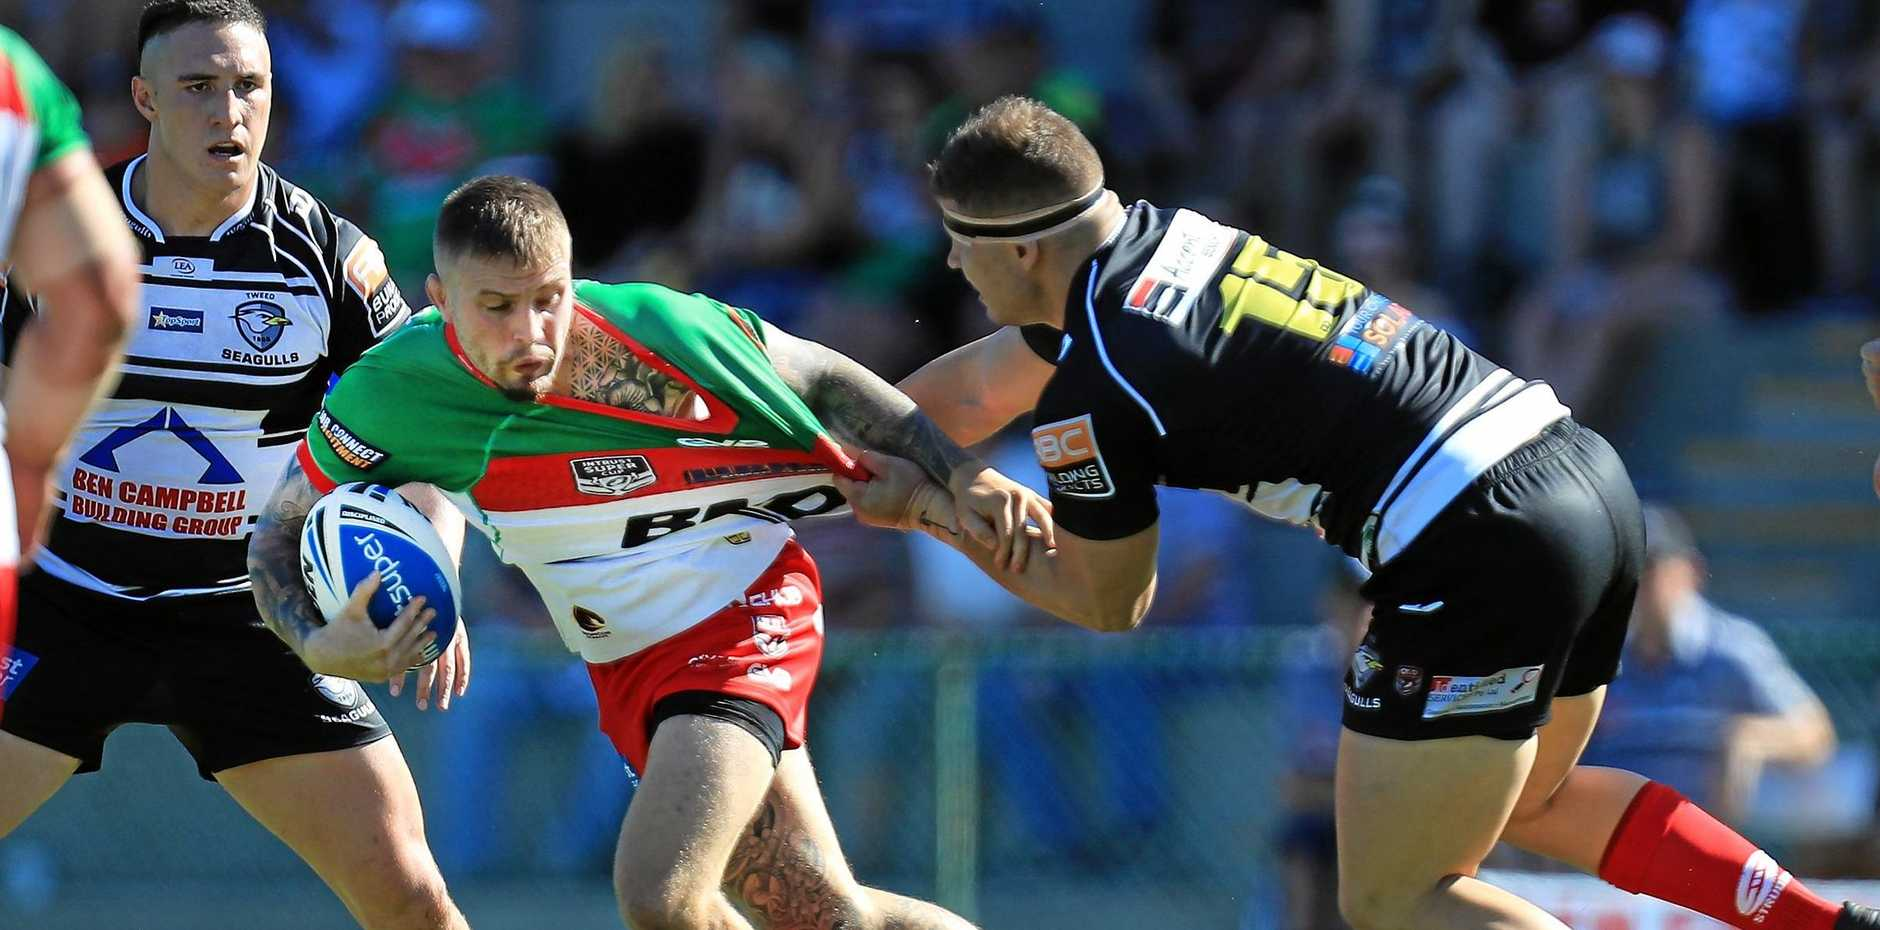 Wynnum-Manly Seagulls player Jayden Berrell with the ball in his side's win over Tweed.